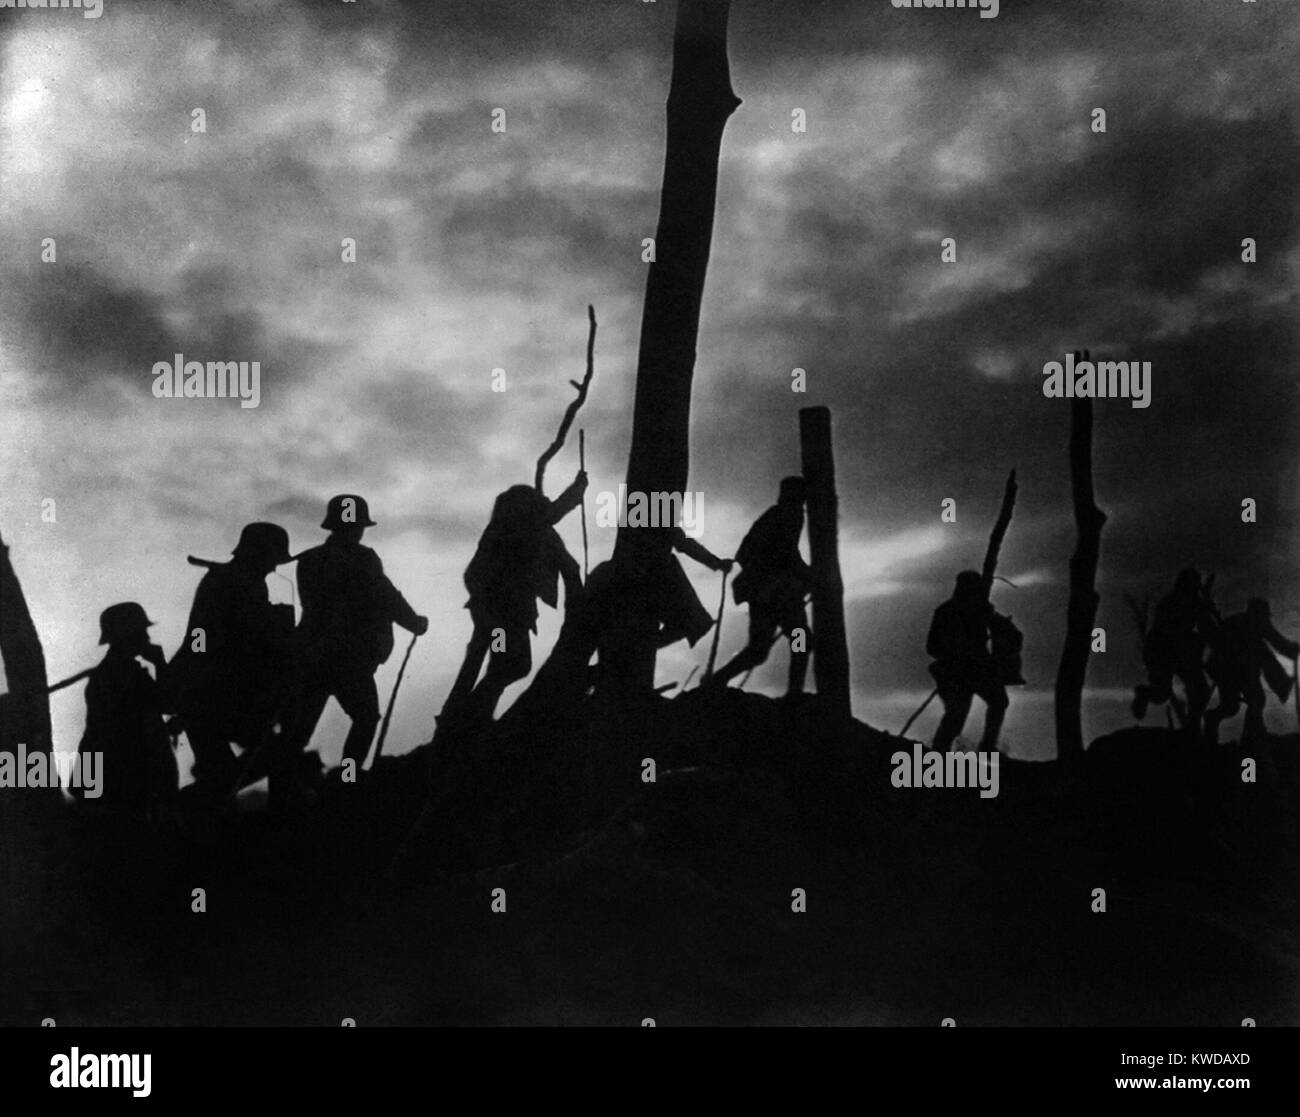 World War 1. Silhouette of German soldiers against a bombed out battlefield. Ca. 1916-18. (BSLOC 2013 1 1) Stock Photo